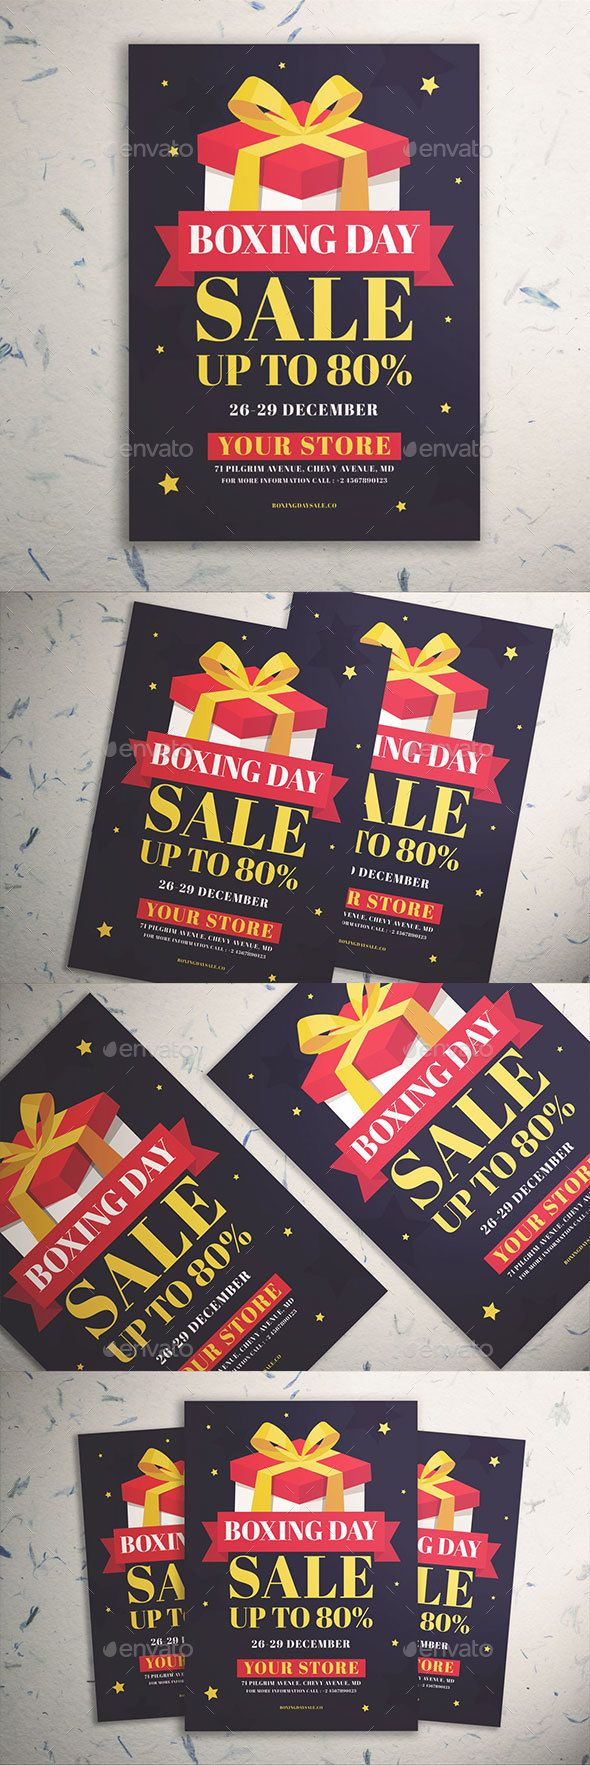 Boxing Day Sale Flyer Template PSD